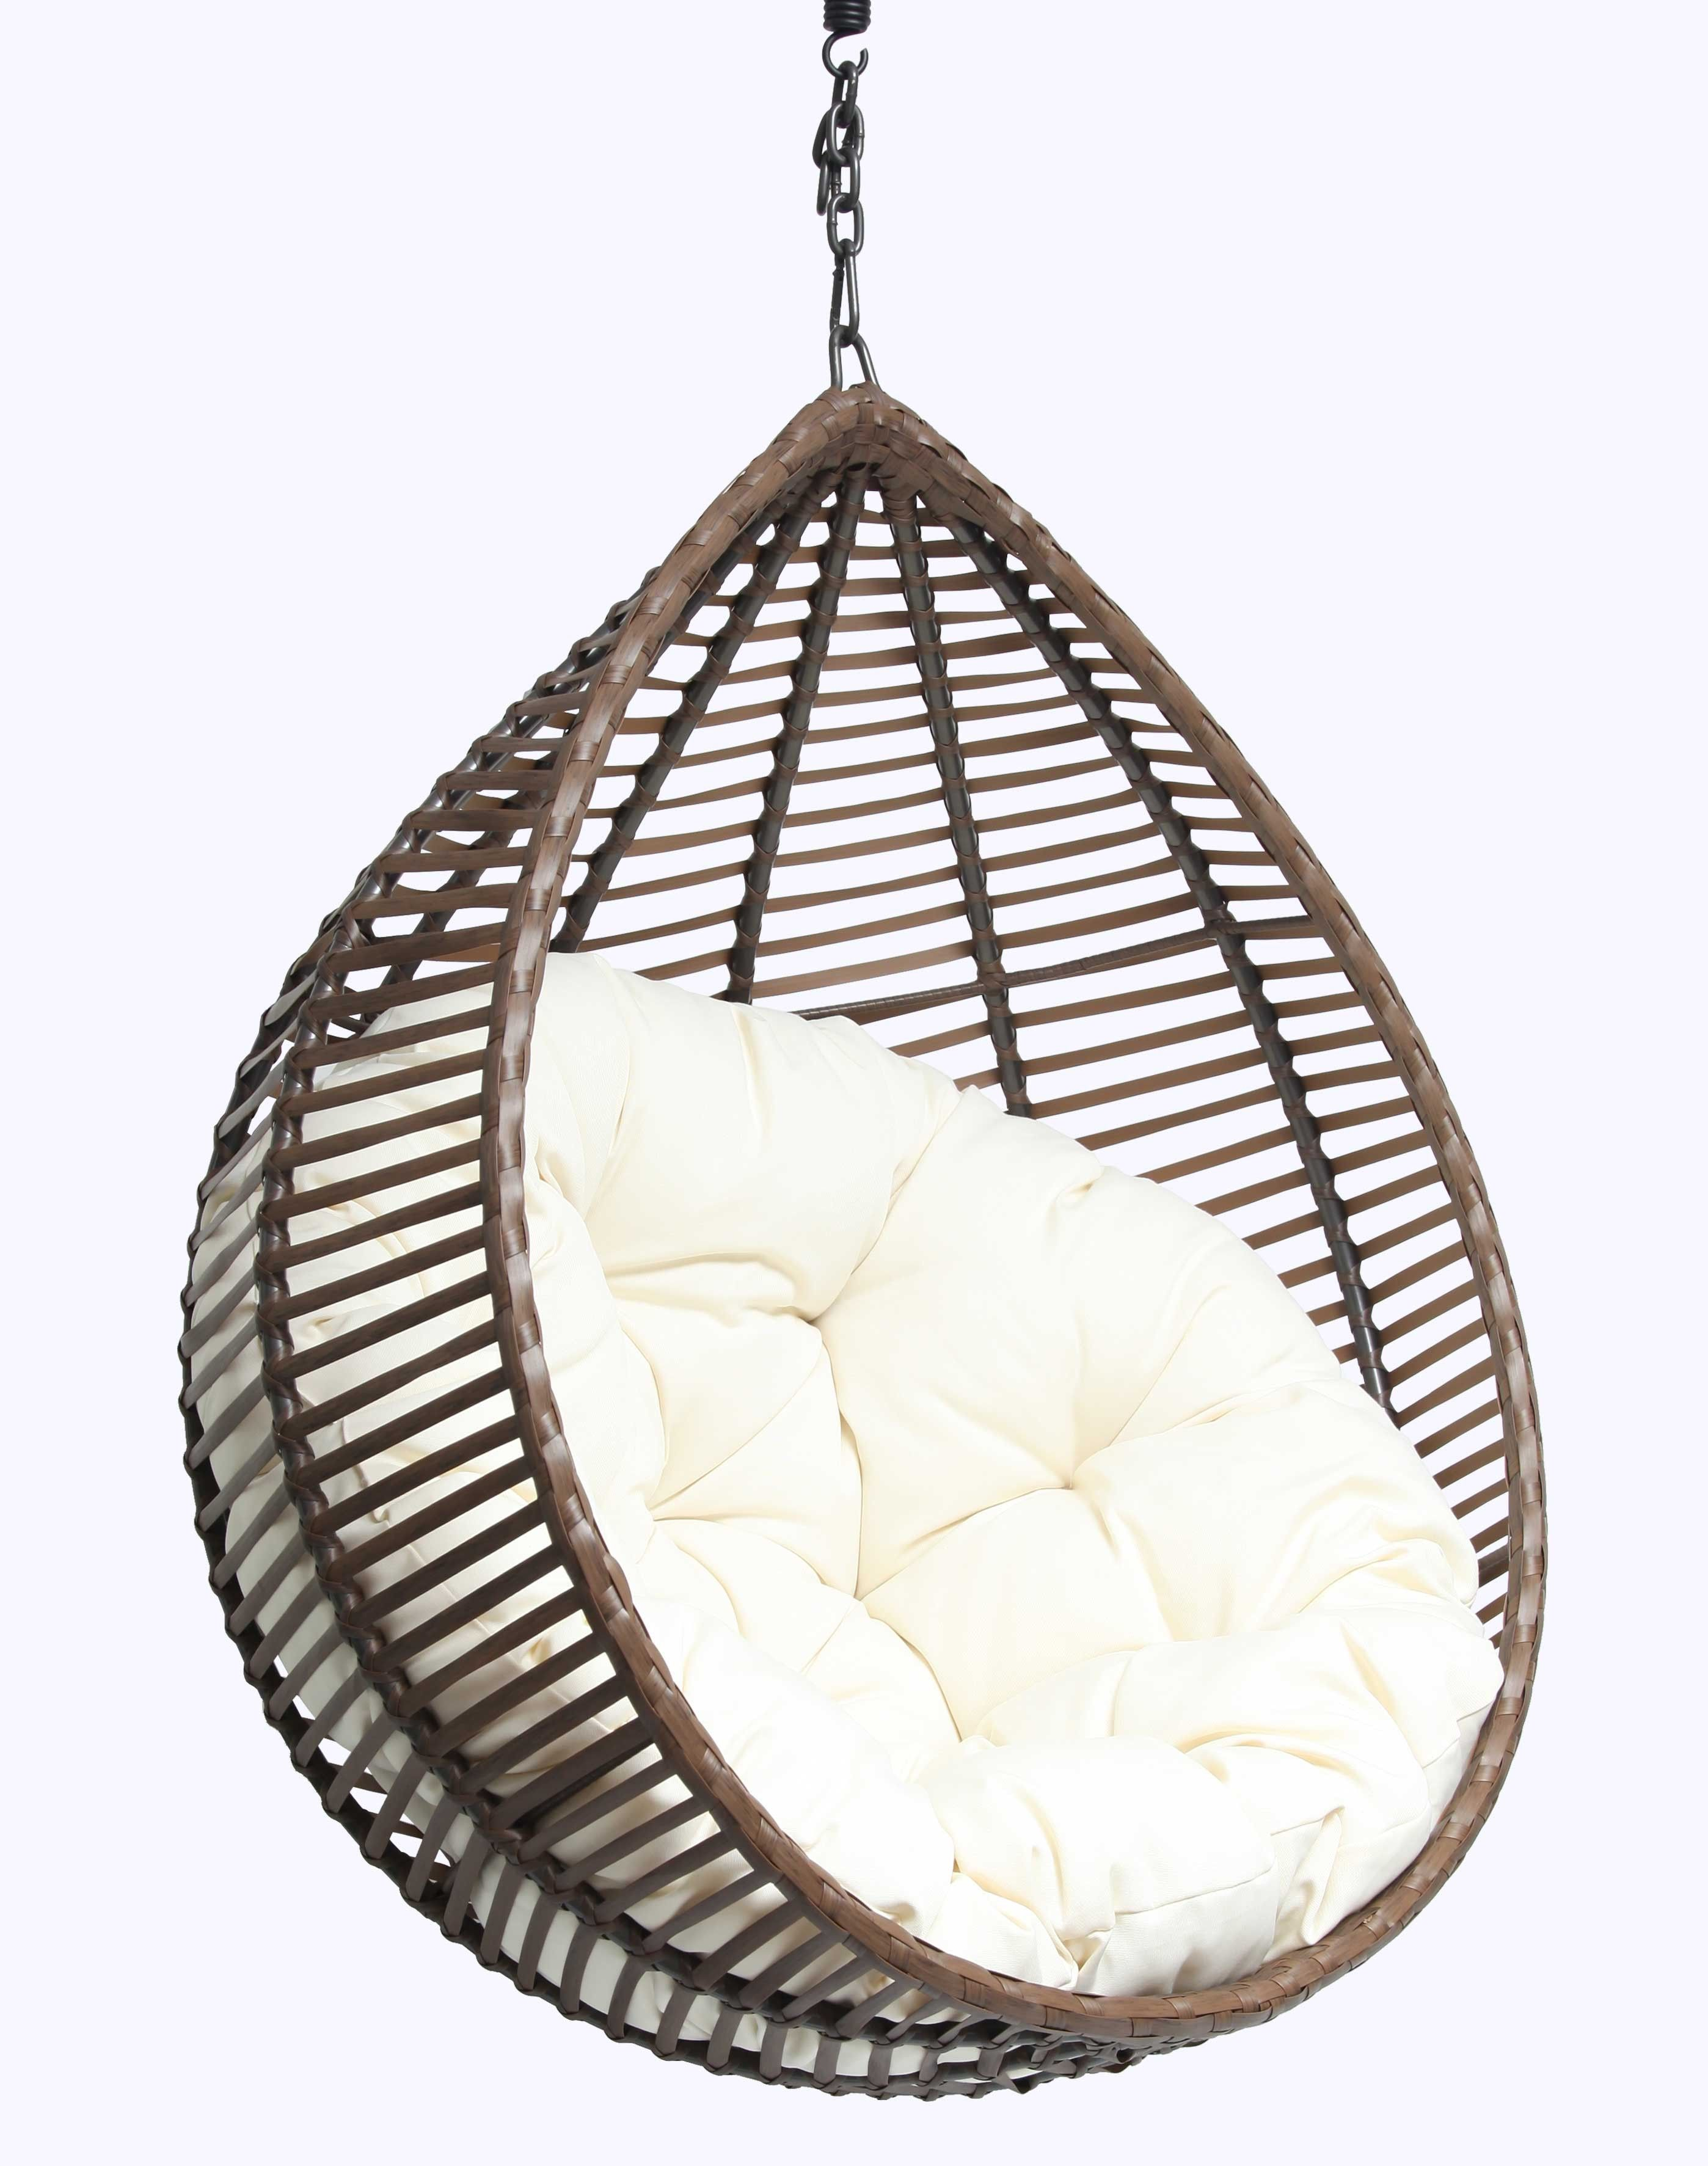 Furniture Excellent Rattan Hanging Egg Chair With White Fabric Tufted Seat As Inspiring Outdoor Garden Hanging Egg Chair Hanging Chair Outdoor Egg Swing Chair